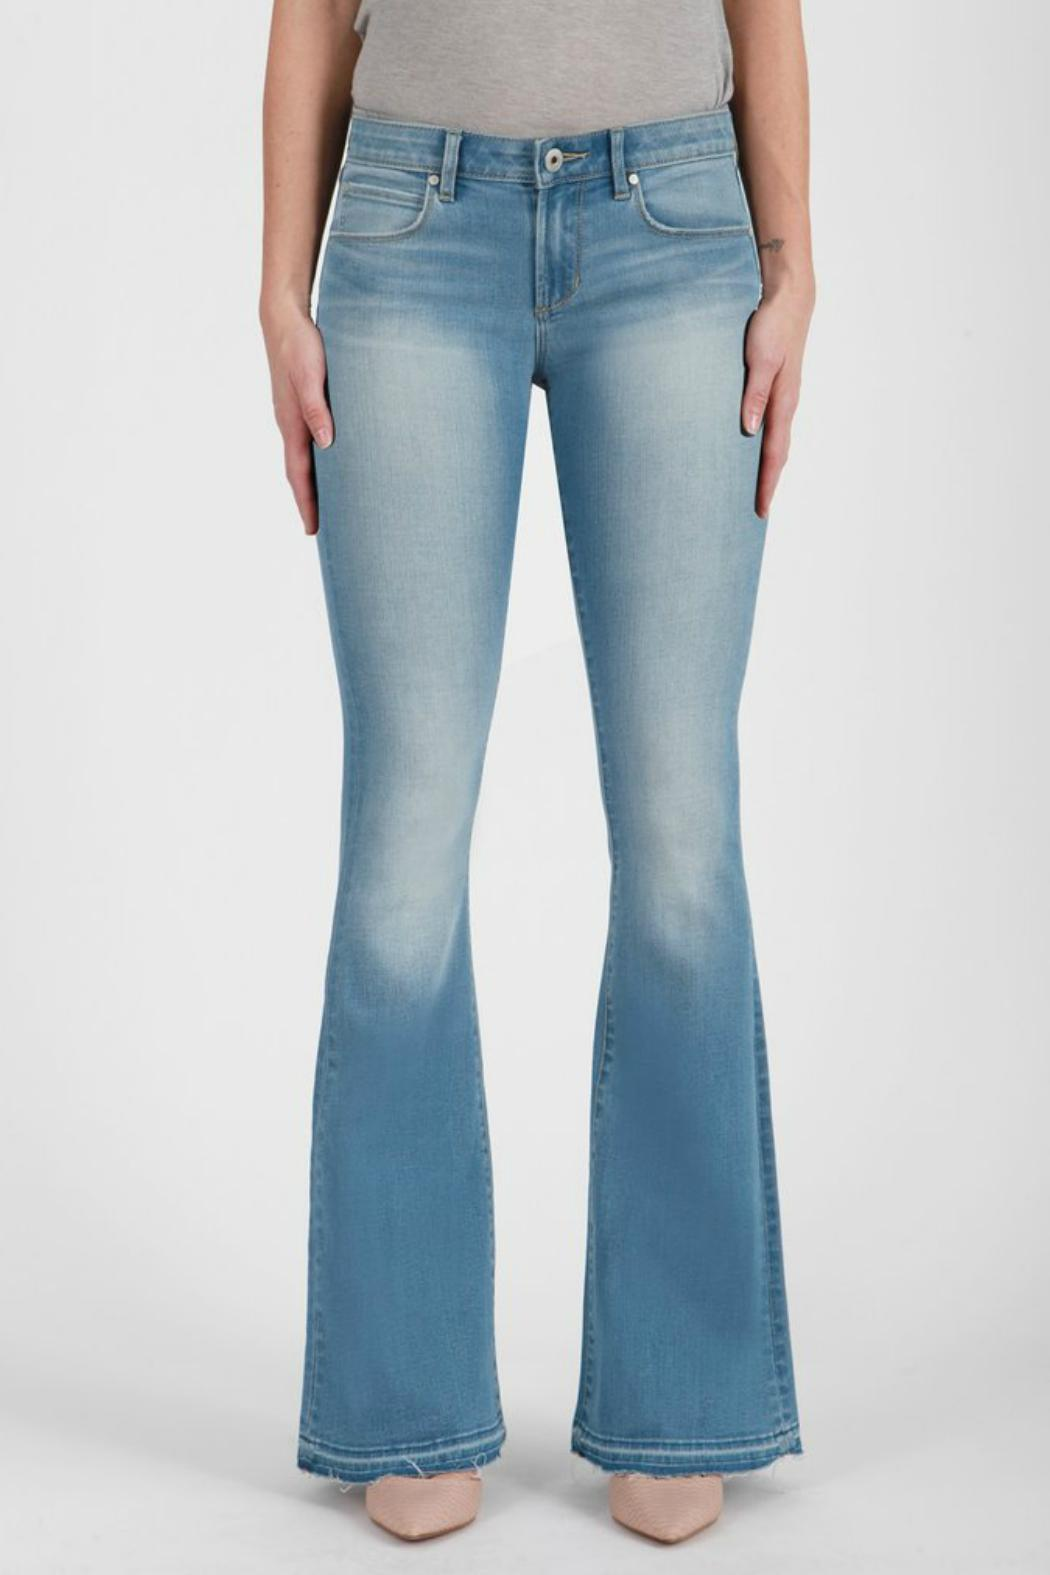 Articles of Society Flared Jeans - Main Image